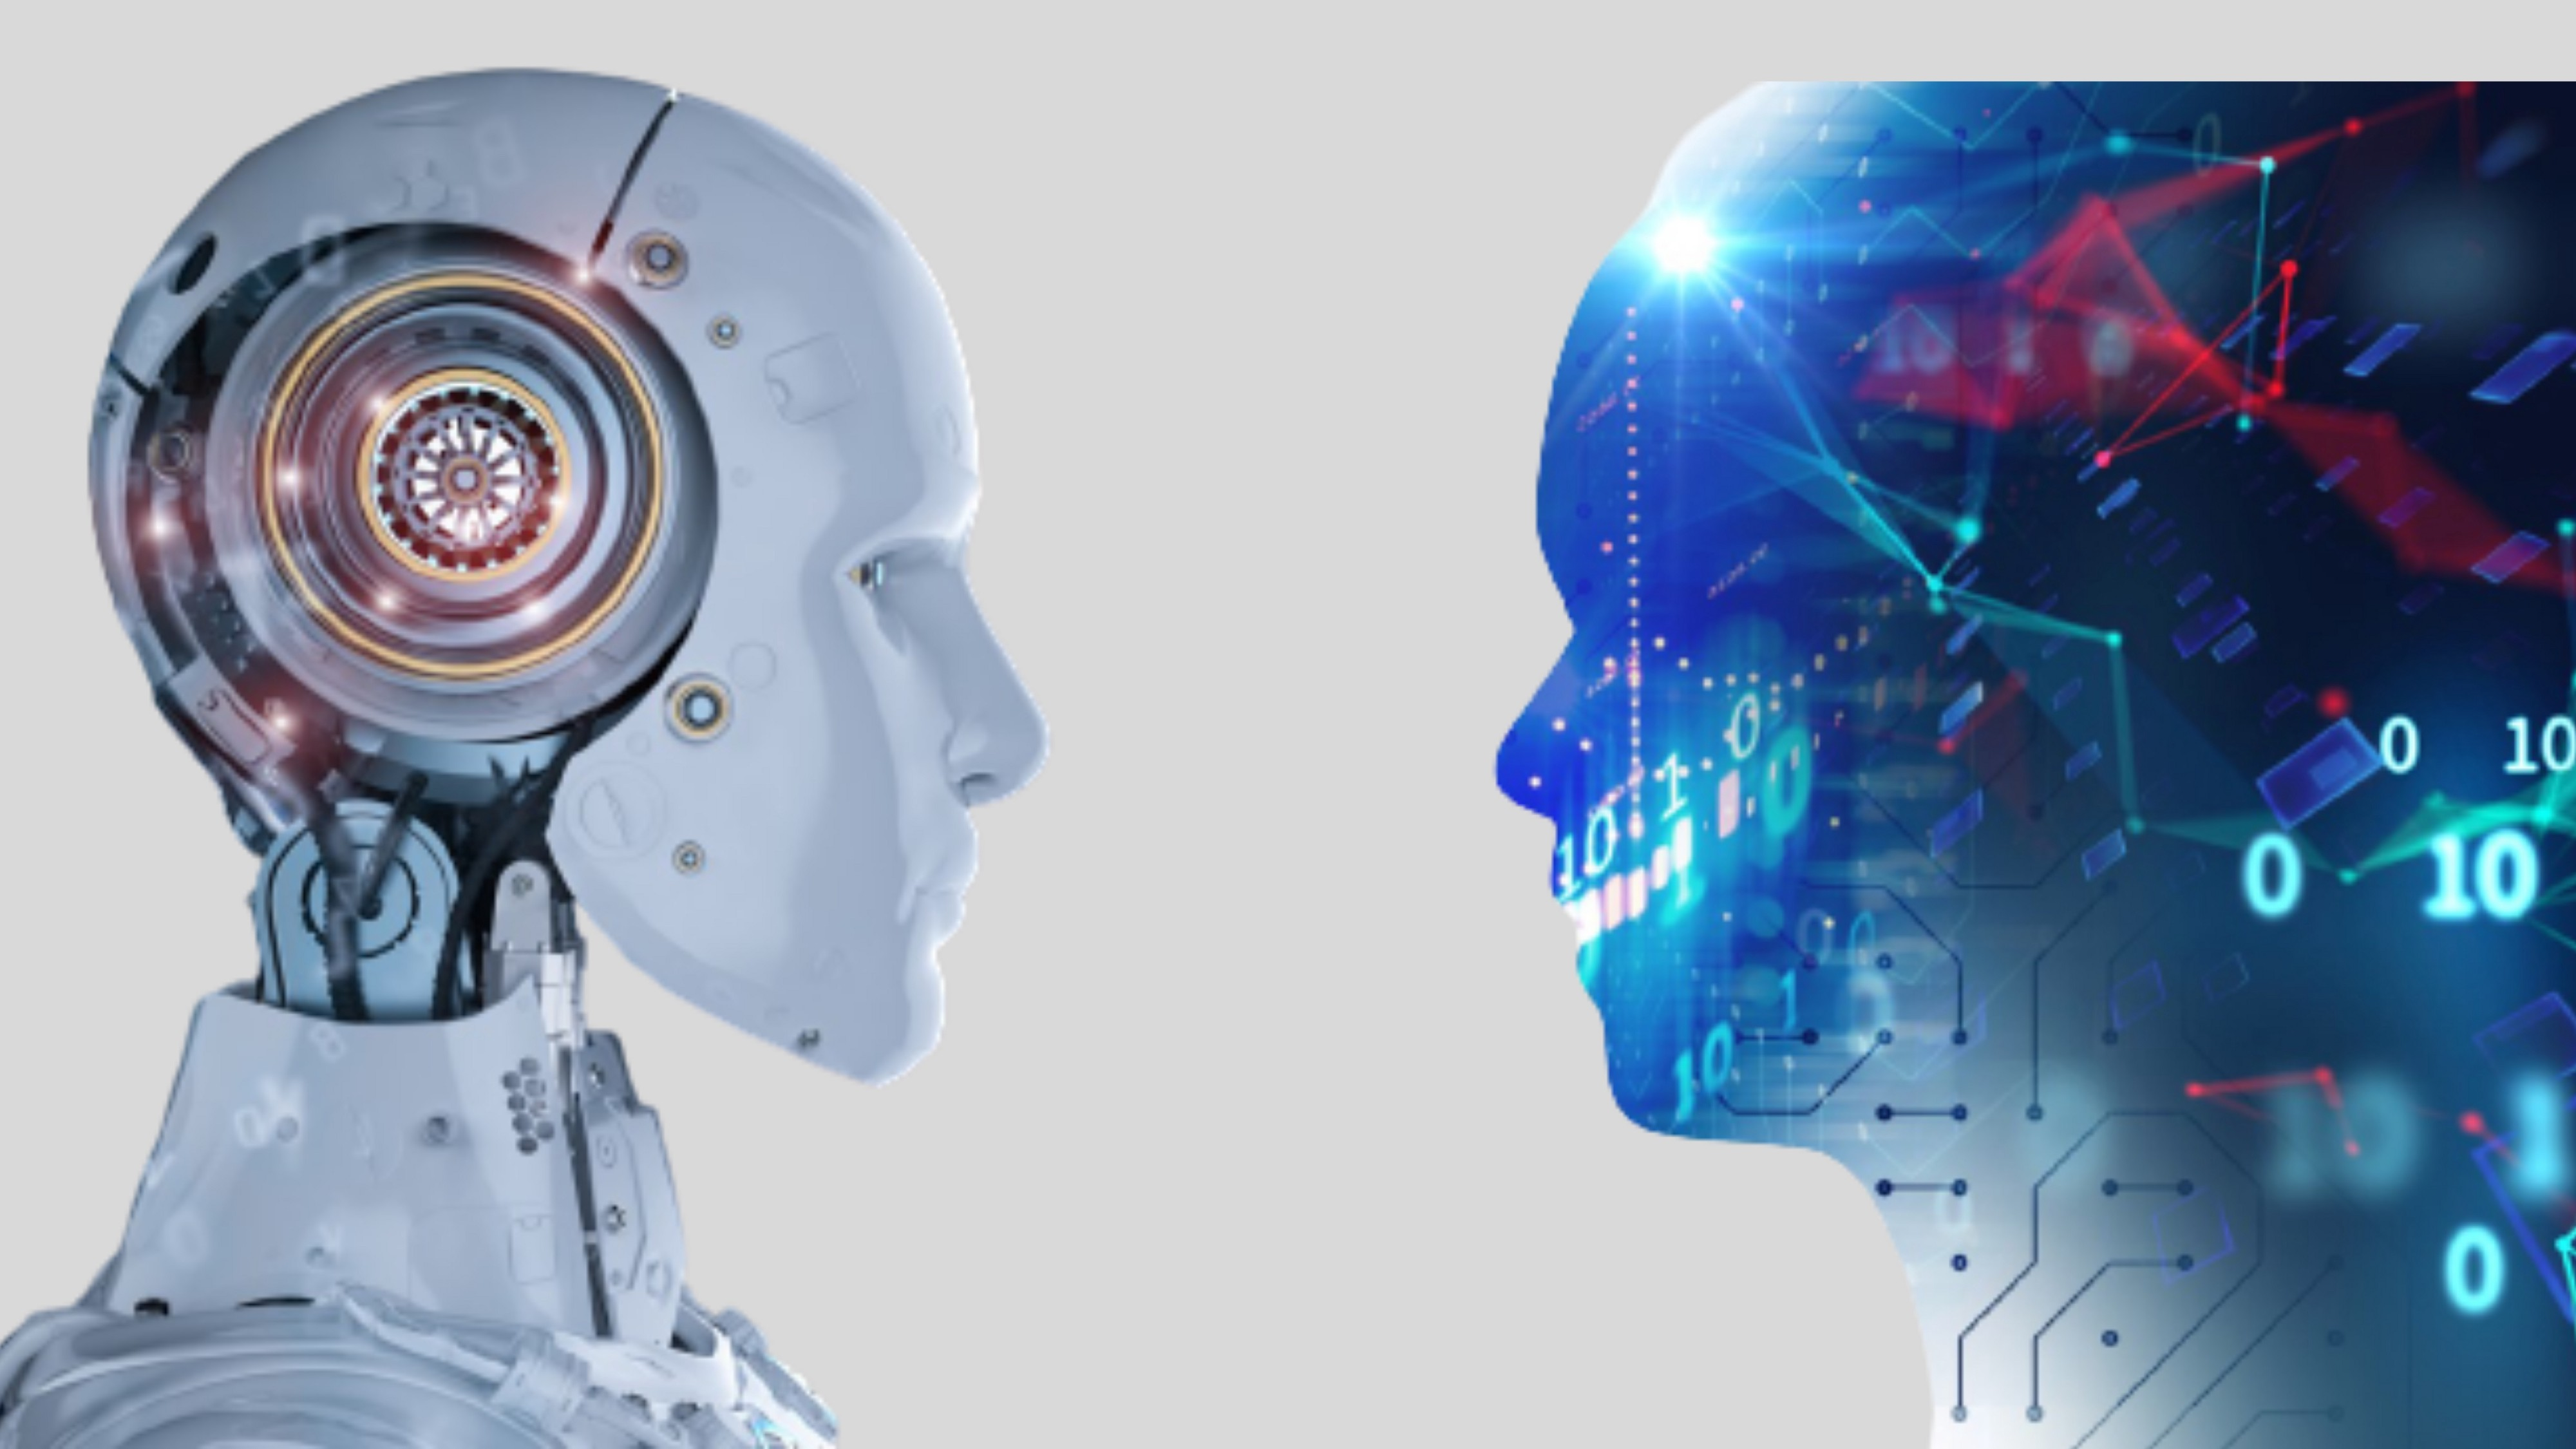 Robotics and Artificial Intelligence are two different fields